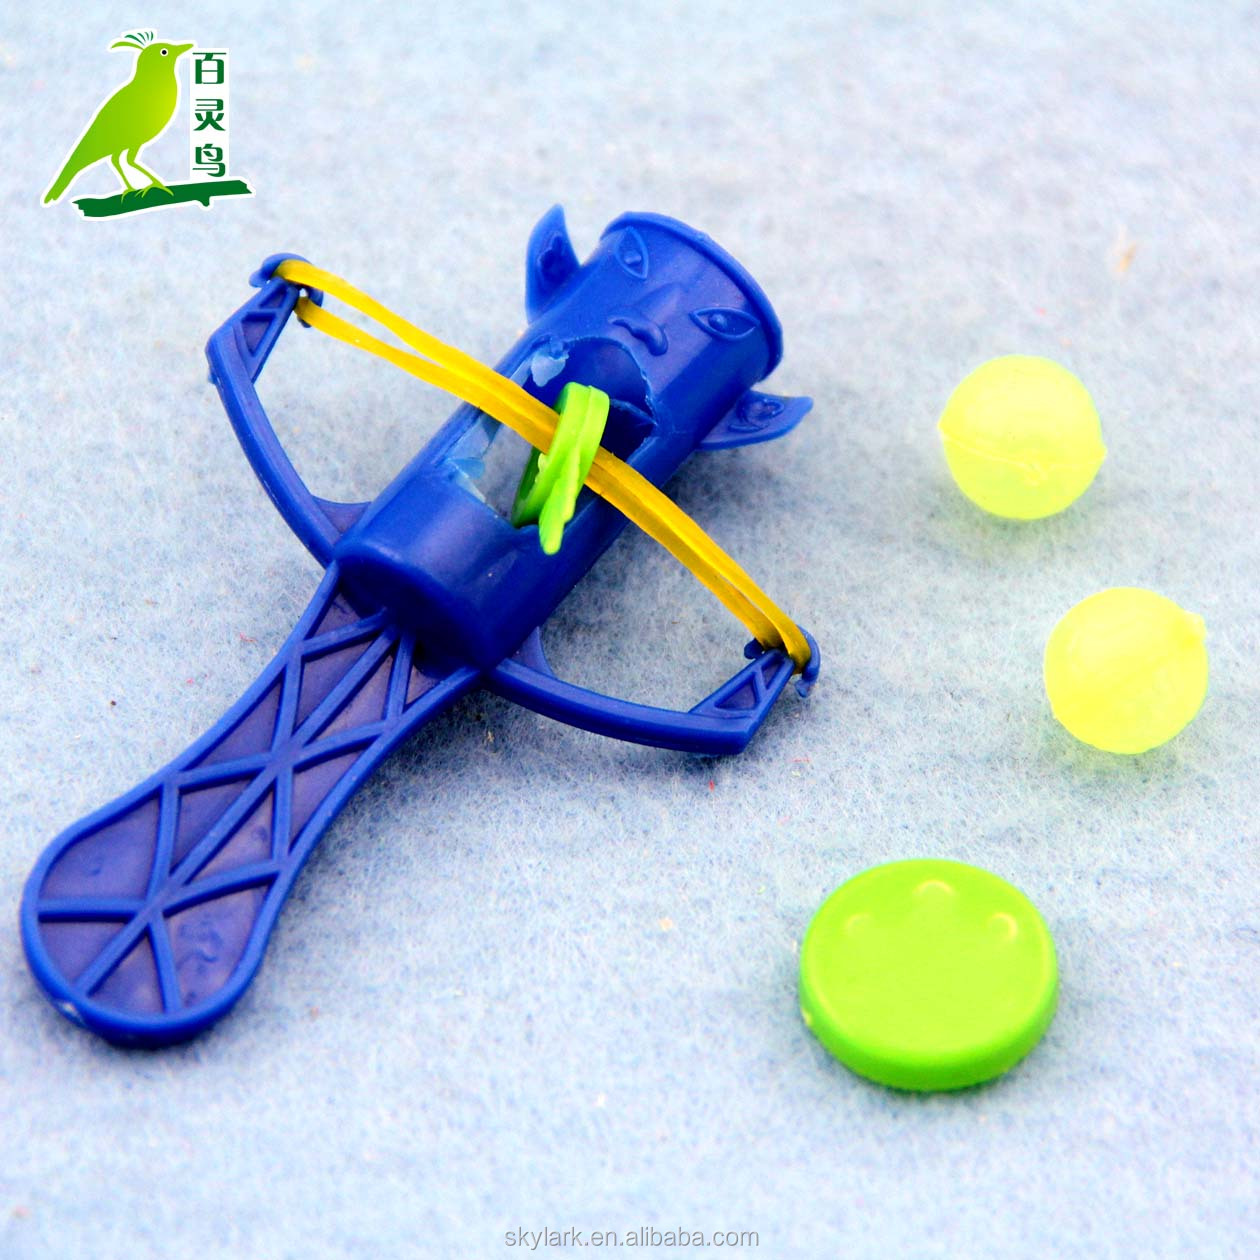 target shooting toys with ball